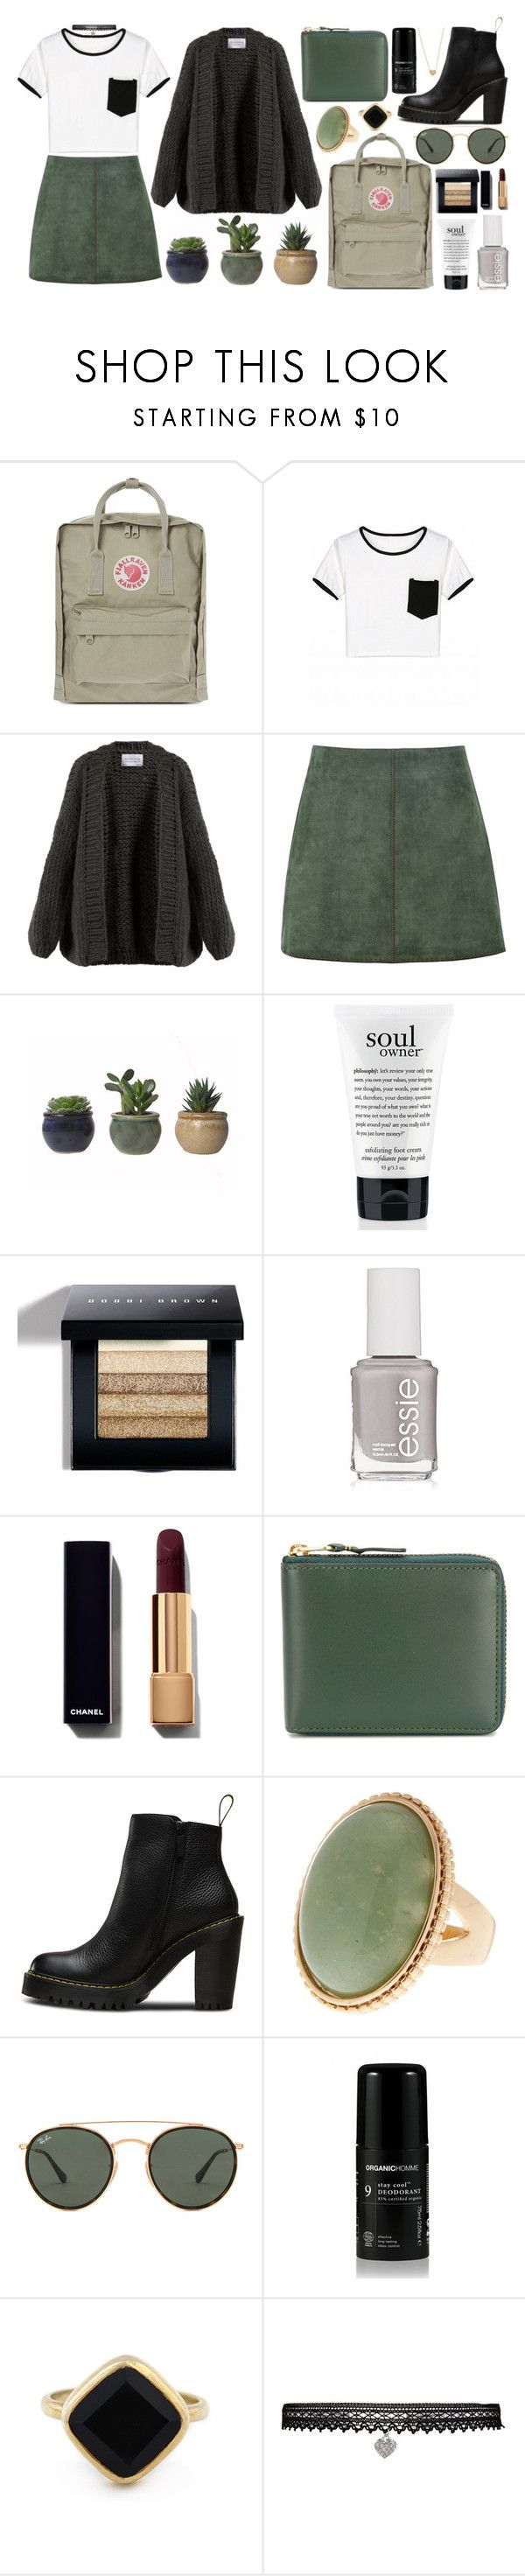 """""""TIME FOR FALL"""" by crankytofu ❤ liked on Polyvore featuring Fjällräven, I Love Mr. Mittens, George J. Love, philosophy, Bobbi Brown Cosmetics, Essie, Comme des Garçons, Magdalena, Ray-Ban and Sole Society"""